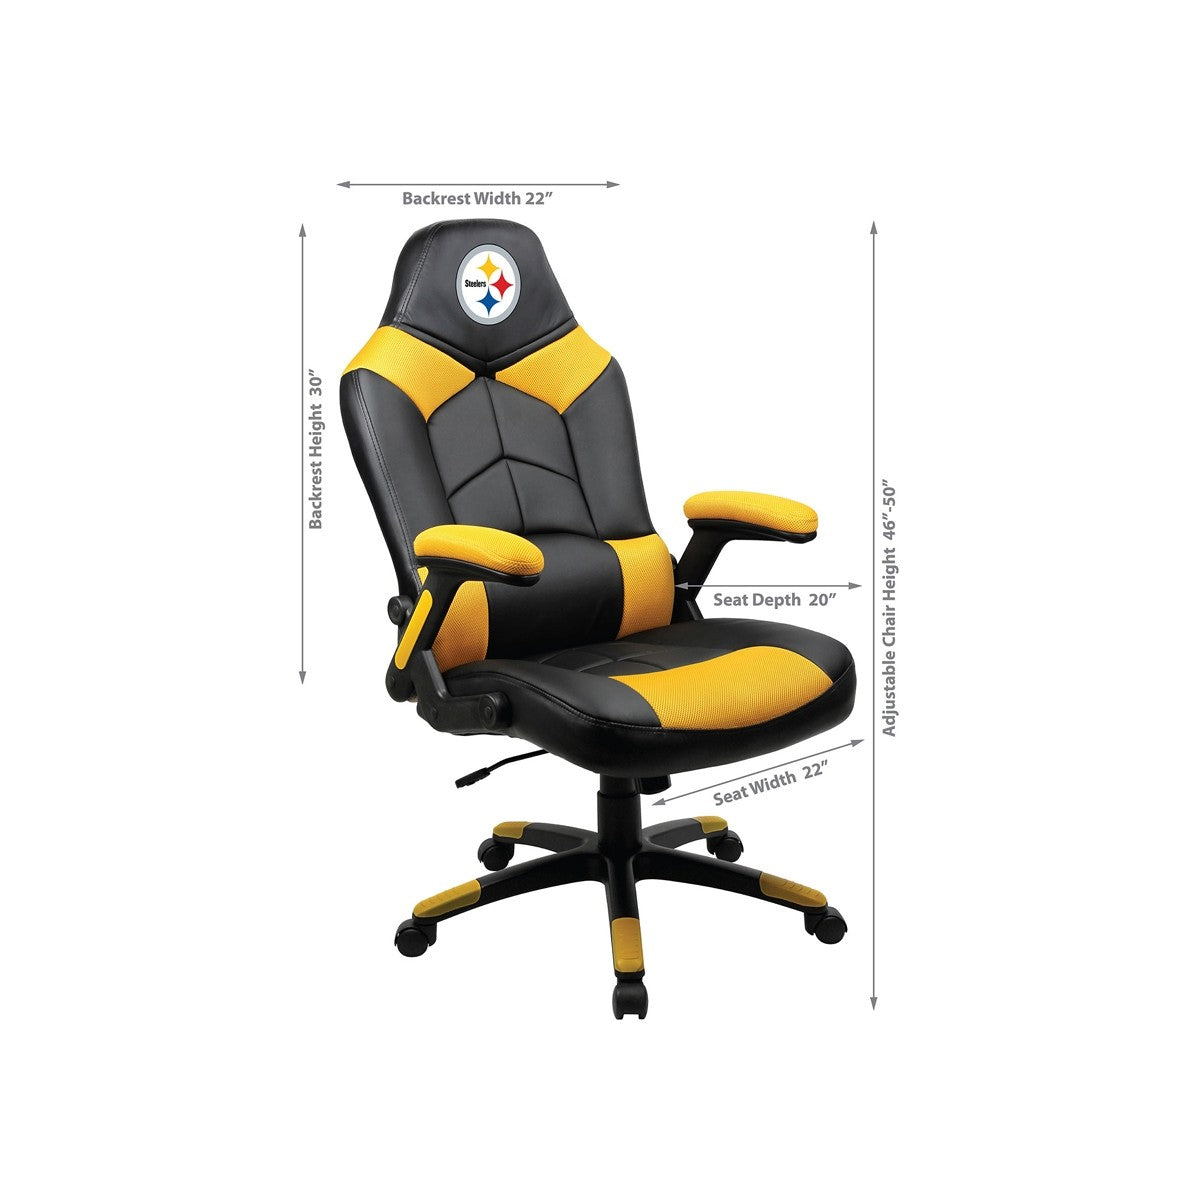 Pittsburgh Steelers Oversized Licensed Gaming Chair   Racer Gaming Chairs